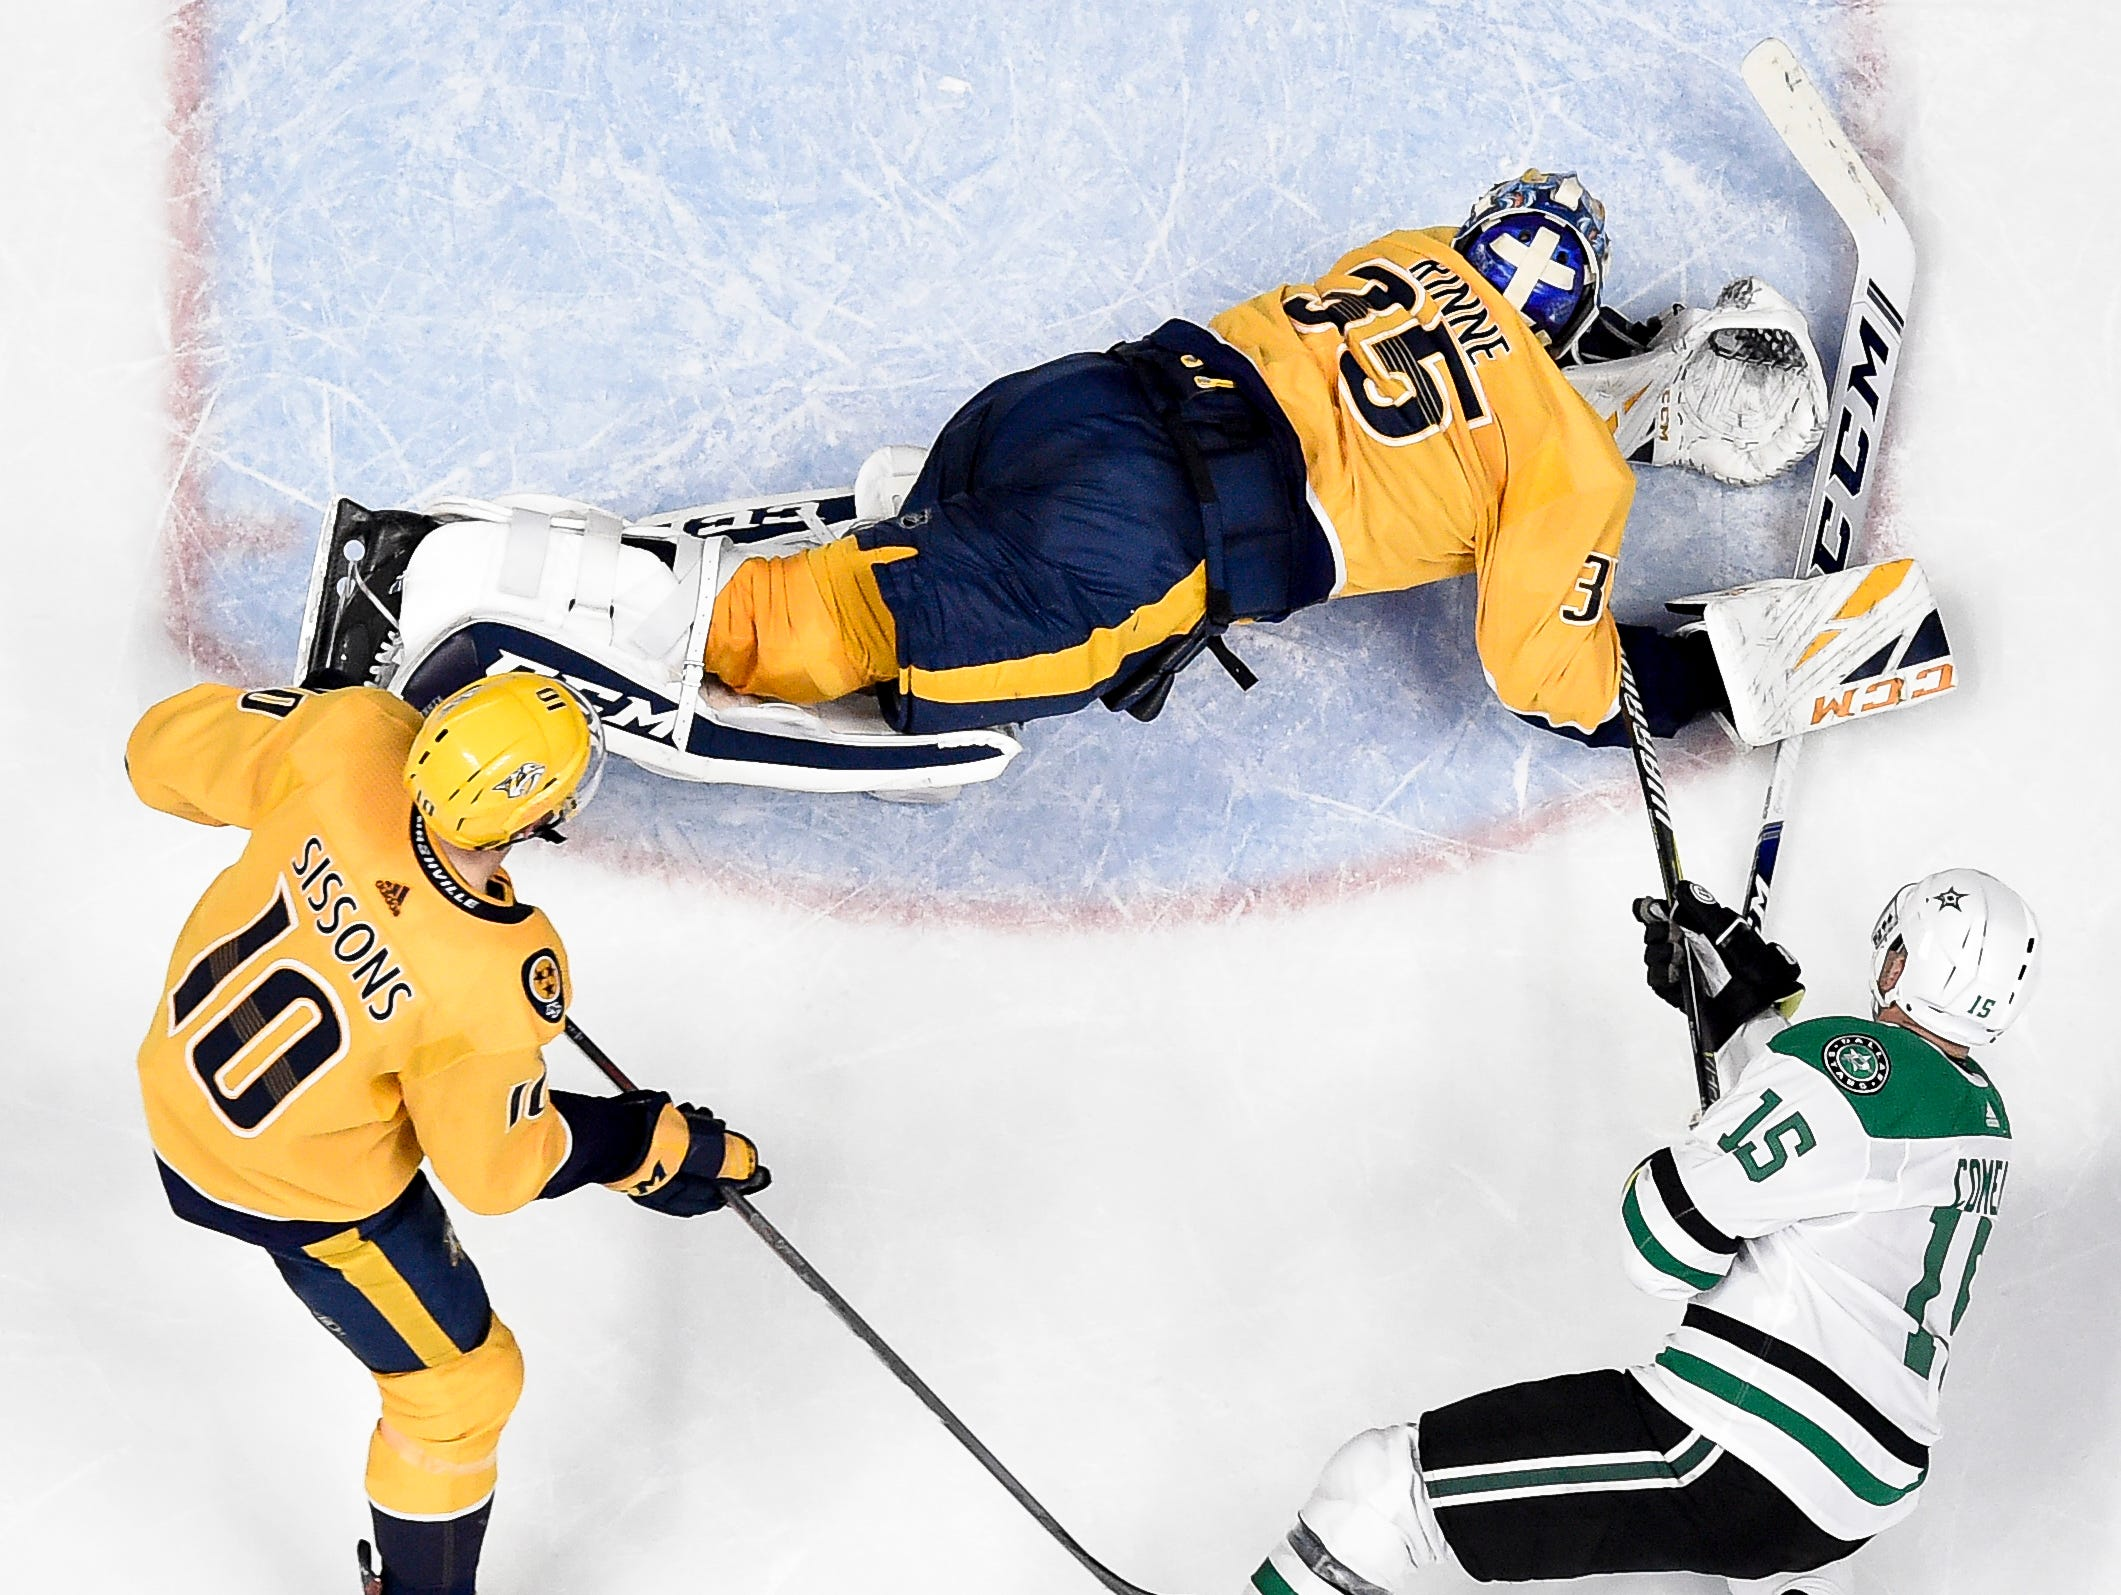 Dallas Stars left wing Blake Comeau (15) scores past Nashville Predators goaltender Pekka Rinne (35) and center Colton Sissons (10) during the third period at Bridgestone Arena in Nashville, Tenn., Saturday, Feb. 2, 2019.